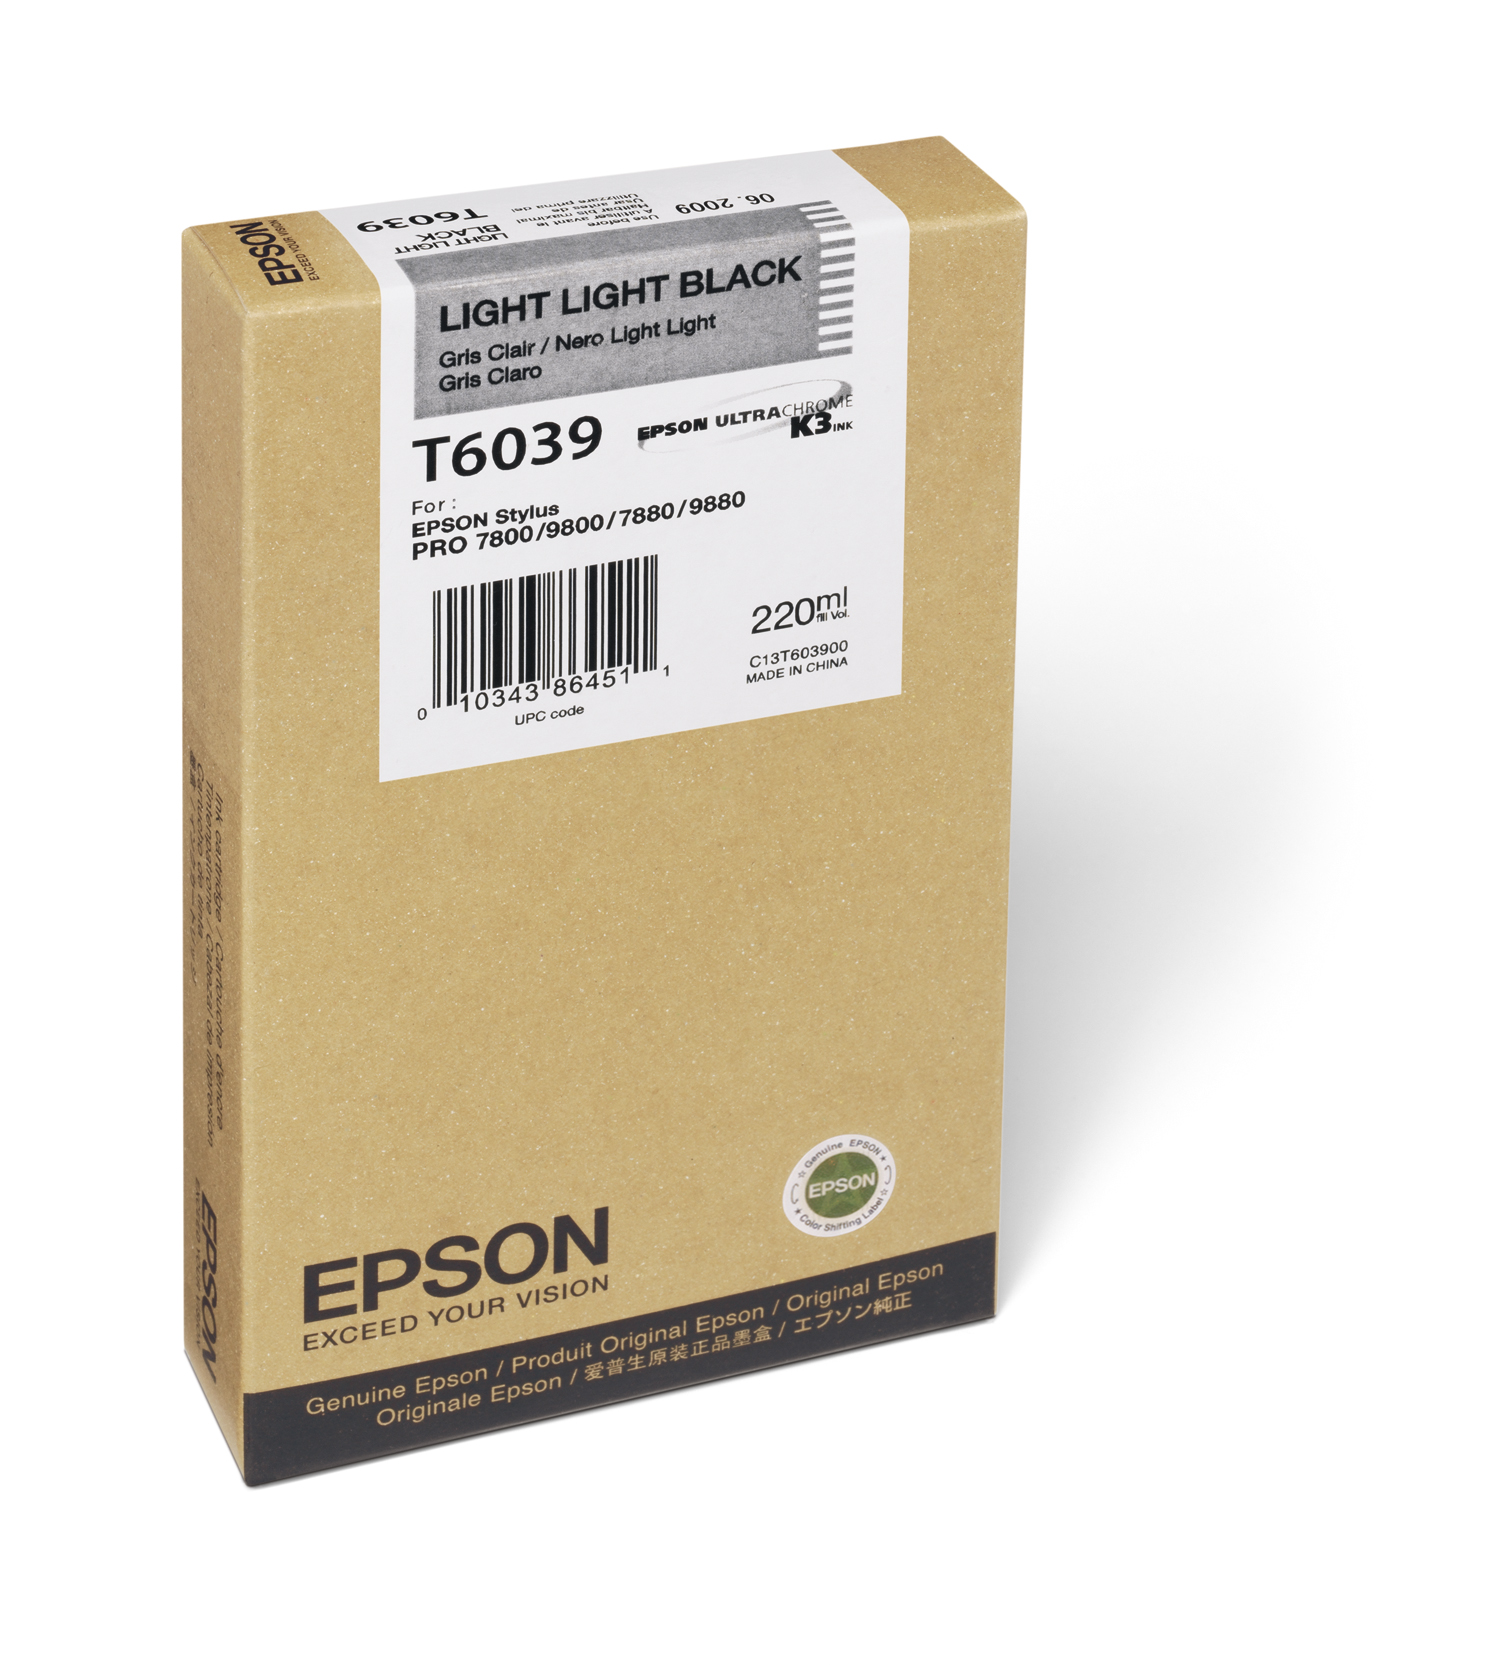 Epson 7800/7880/9800/9880 Light Light Black Ink UltraChrome (220ml) (T603900)